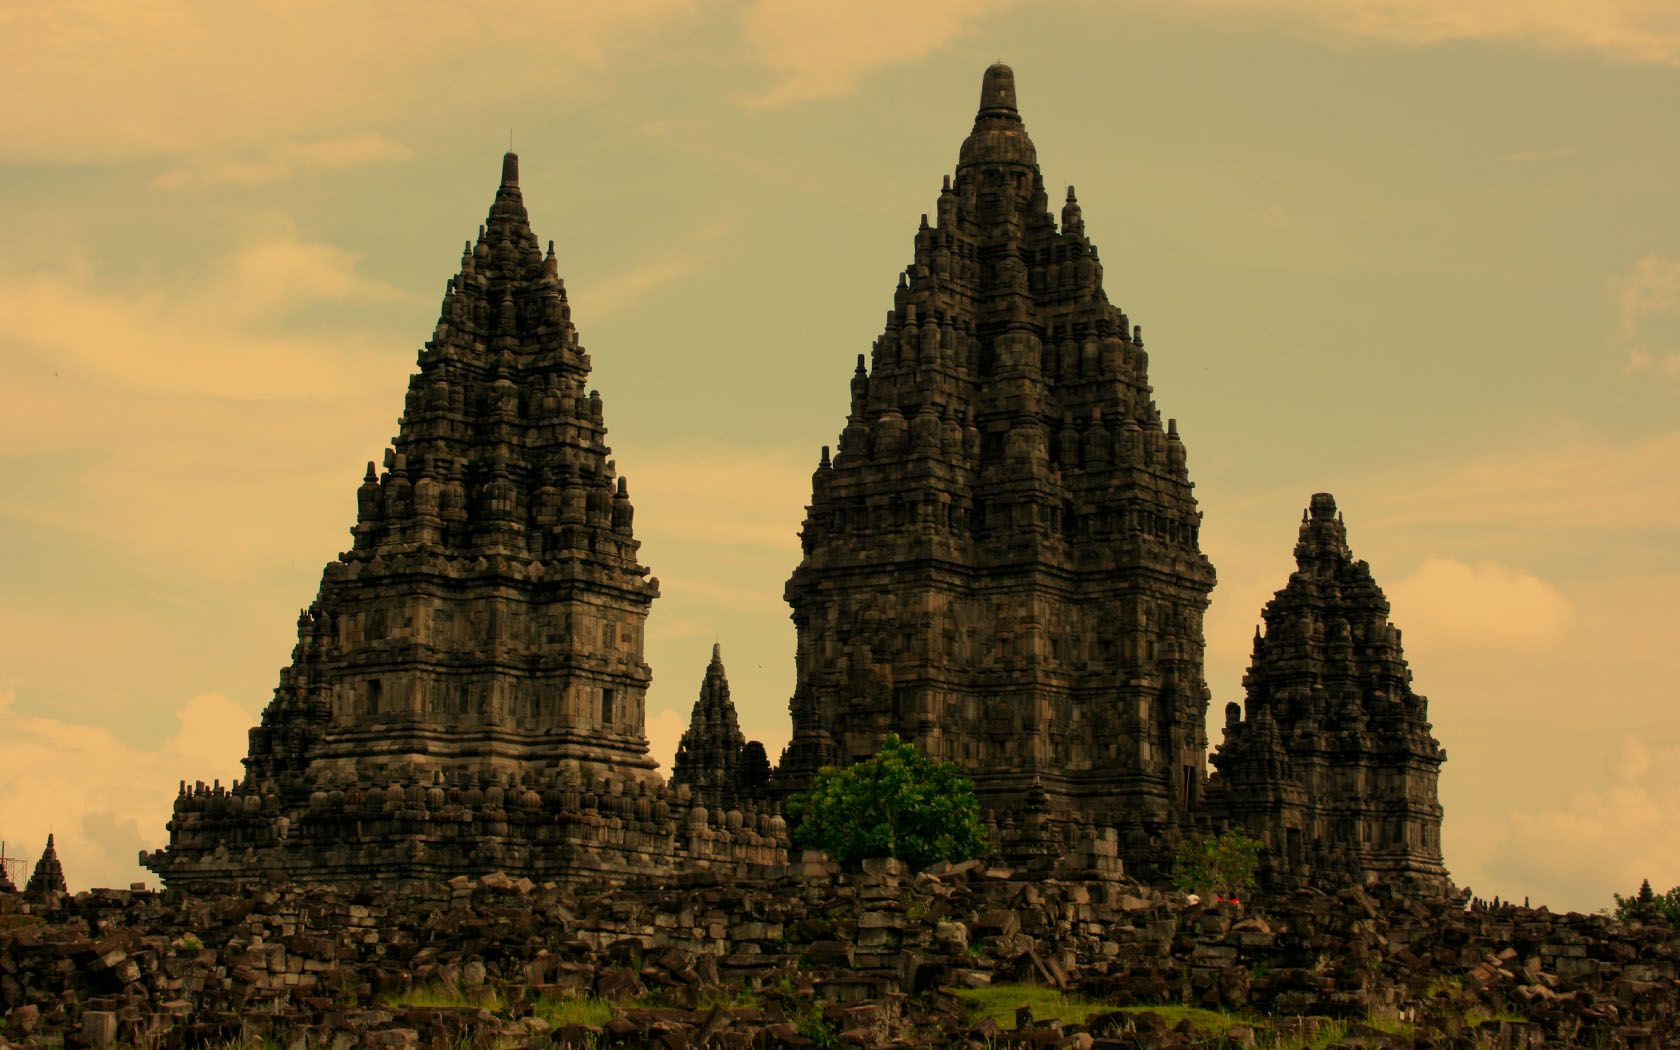 ruins-indonesia-java-prambanan-temples-x-wallpaper-wp428877-1